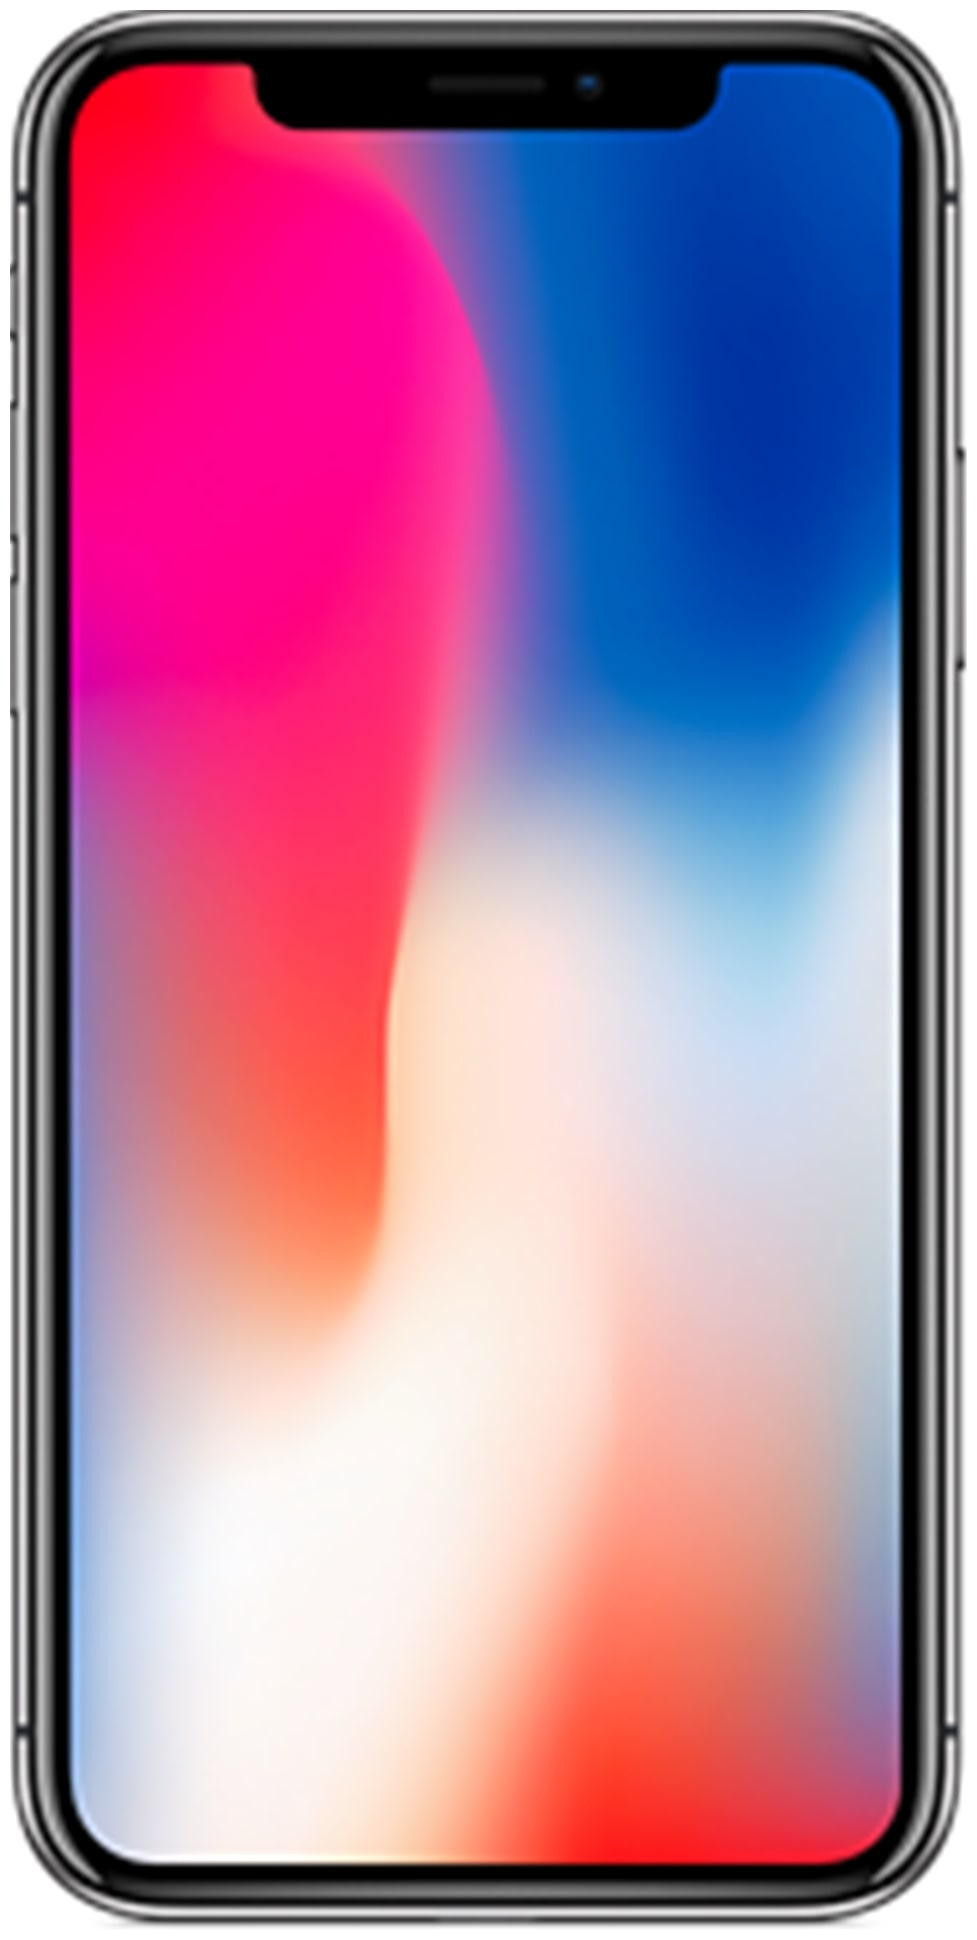 https://assetscdn1.paytm.com/images/catalog/product/M/MO/MOBAPPLE-IPHONESTEC167323CEEADC72/a_0.png